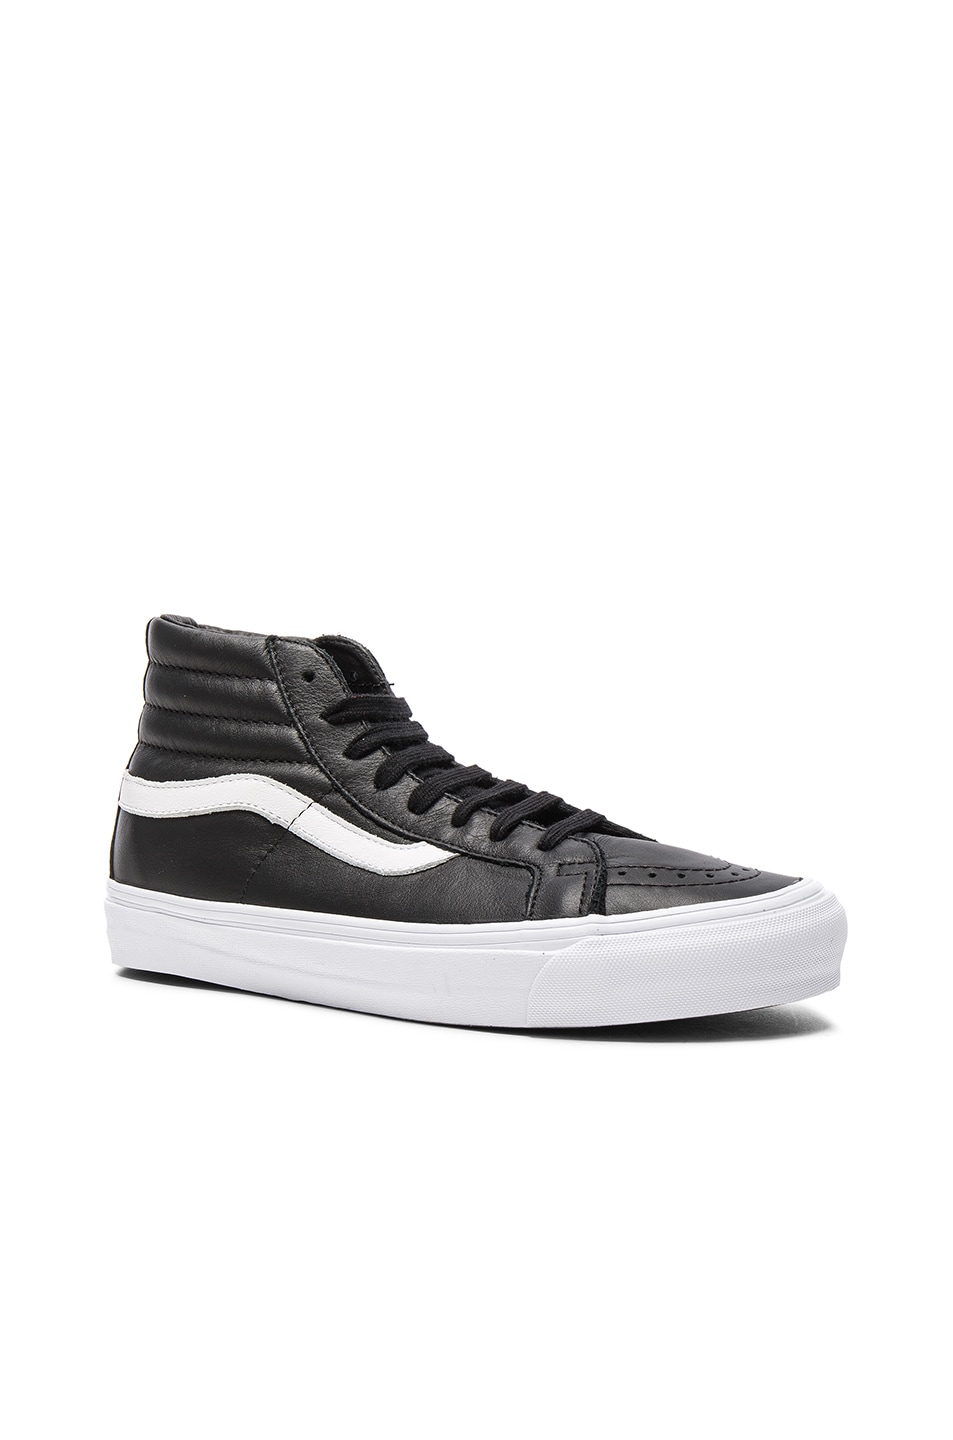 Image 2 of Vans Vault OG Leather SK8-HI LX in Black